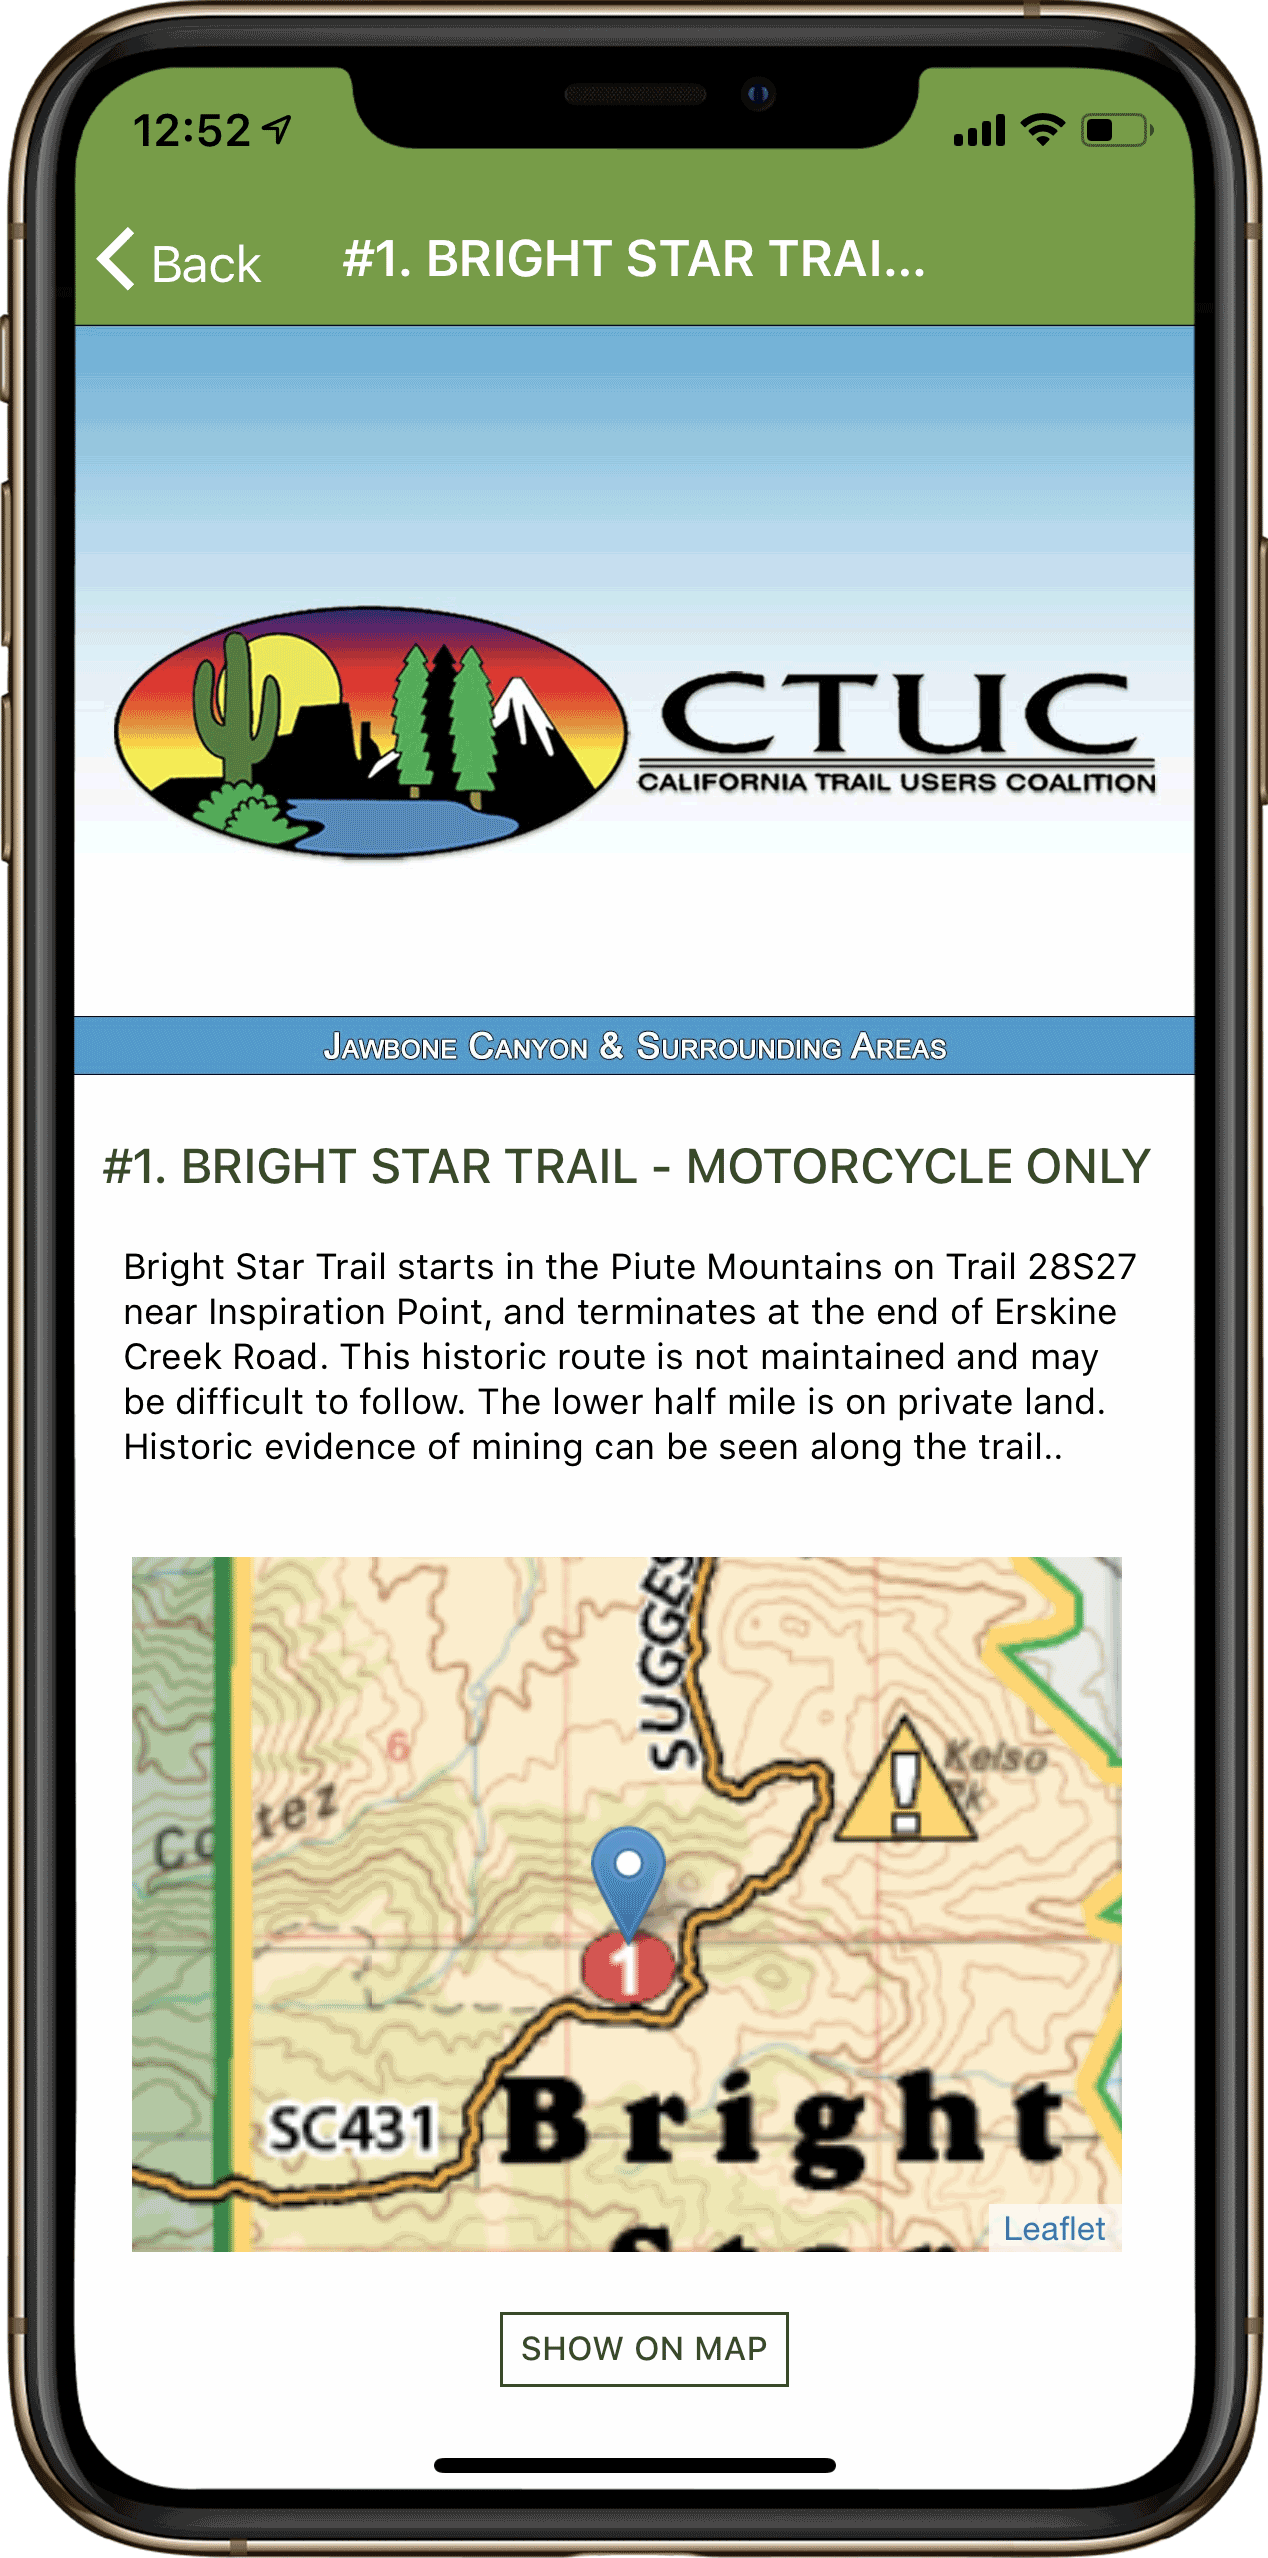 This is a screenshot of a Discovery Point screen in the OHV Trail Map California Application.